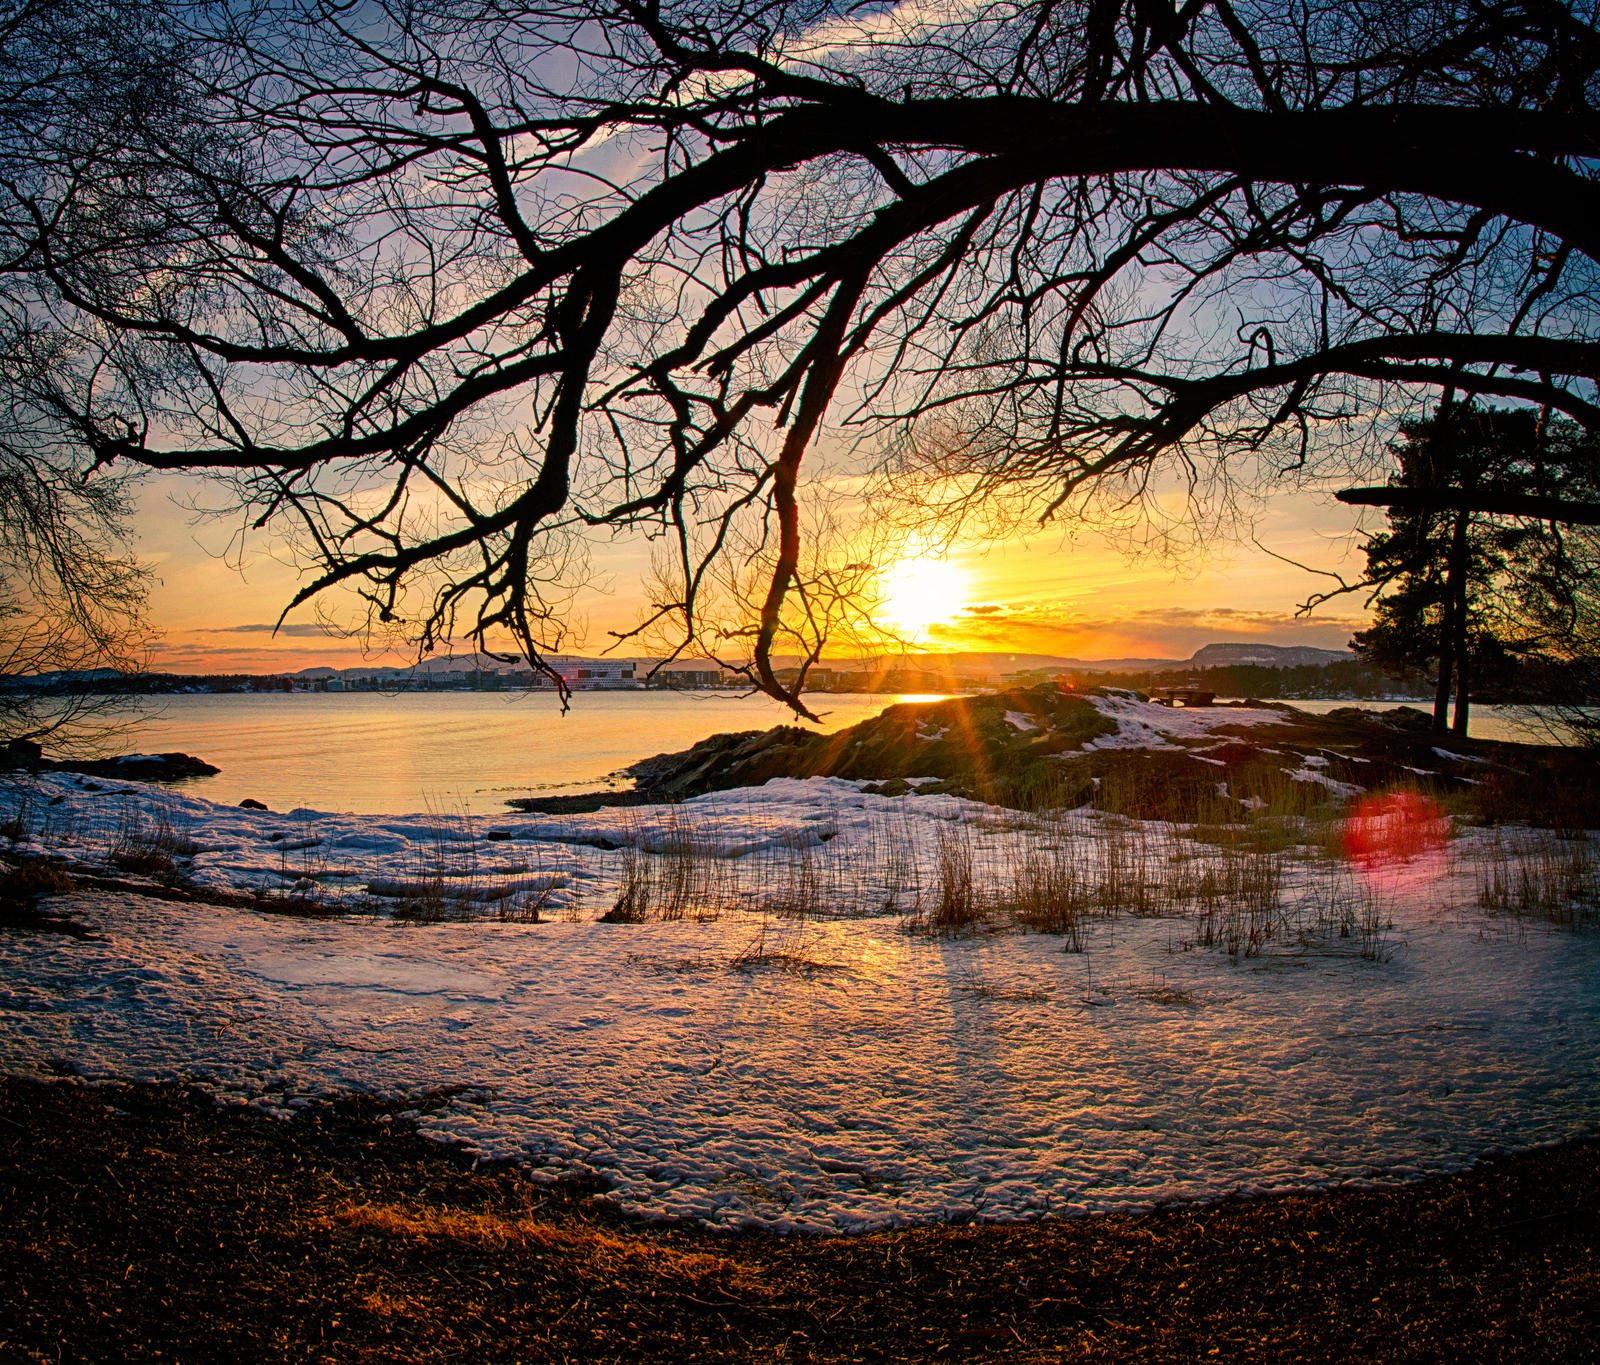 Easter Sunset by scwl